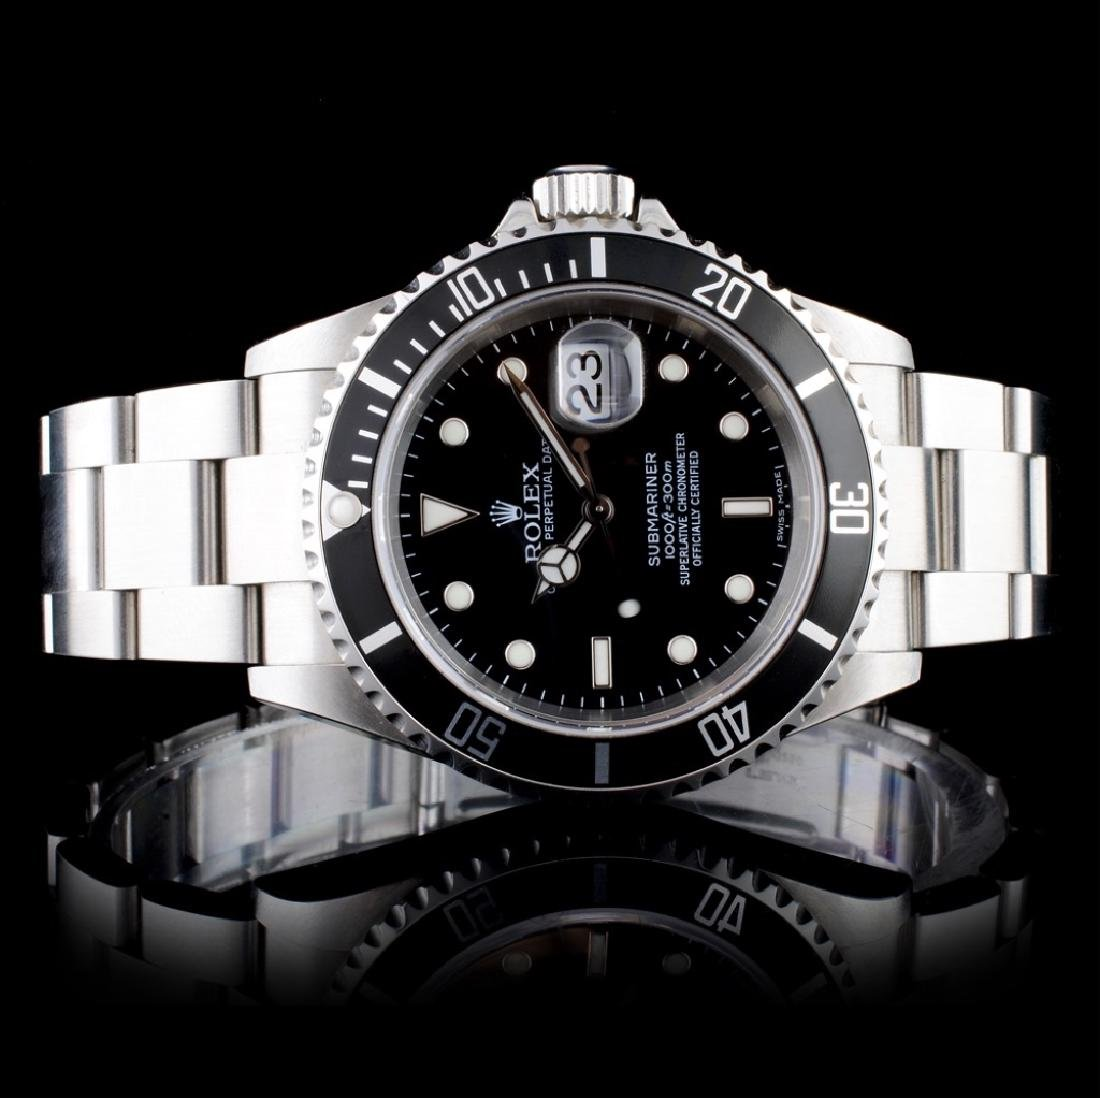 Rolex Submariner Stainless Steel Wristwatch